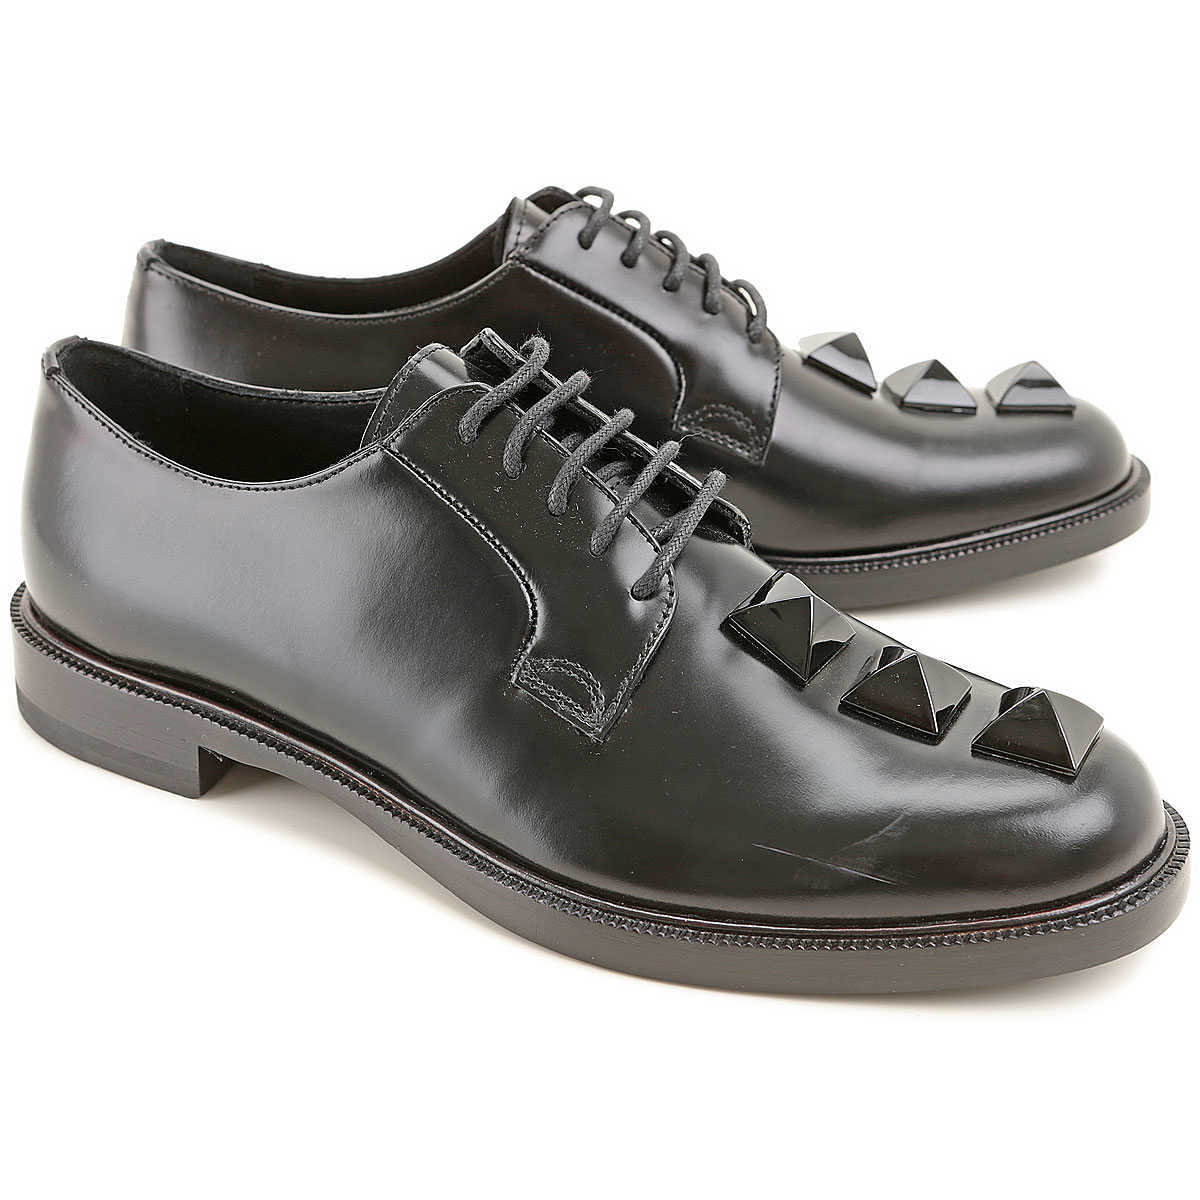 Giacomorelli Lace Up Shoes for Men Oxfords Derbies and Brogues On Sale in Outlet - GOOFASH